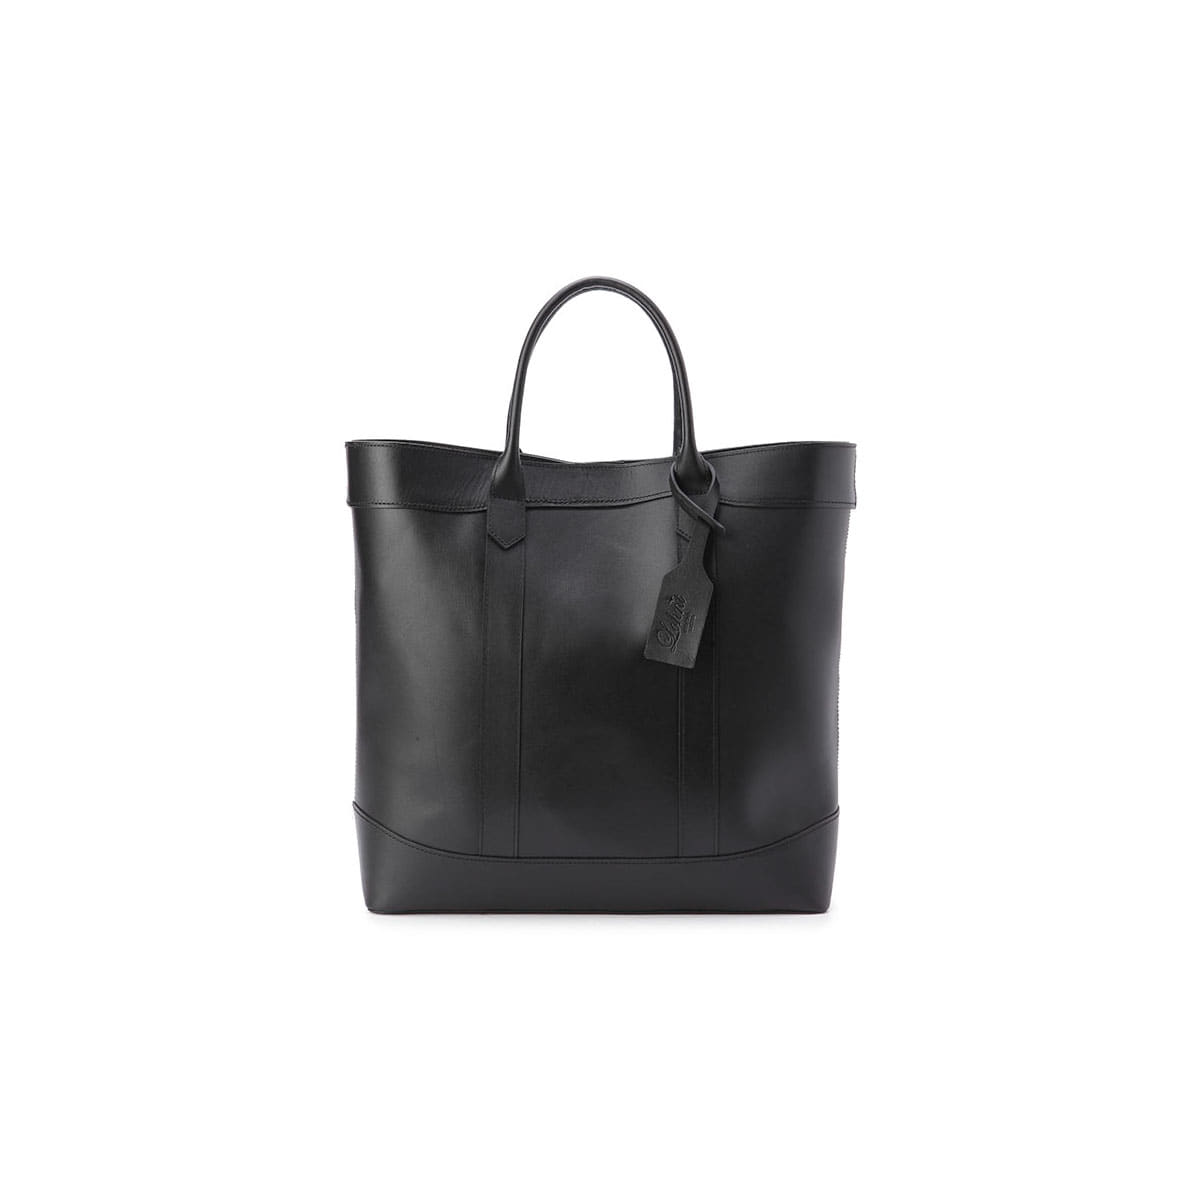 077 Black Vegetable TotebagLohnt(론트)